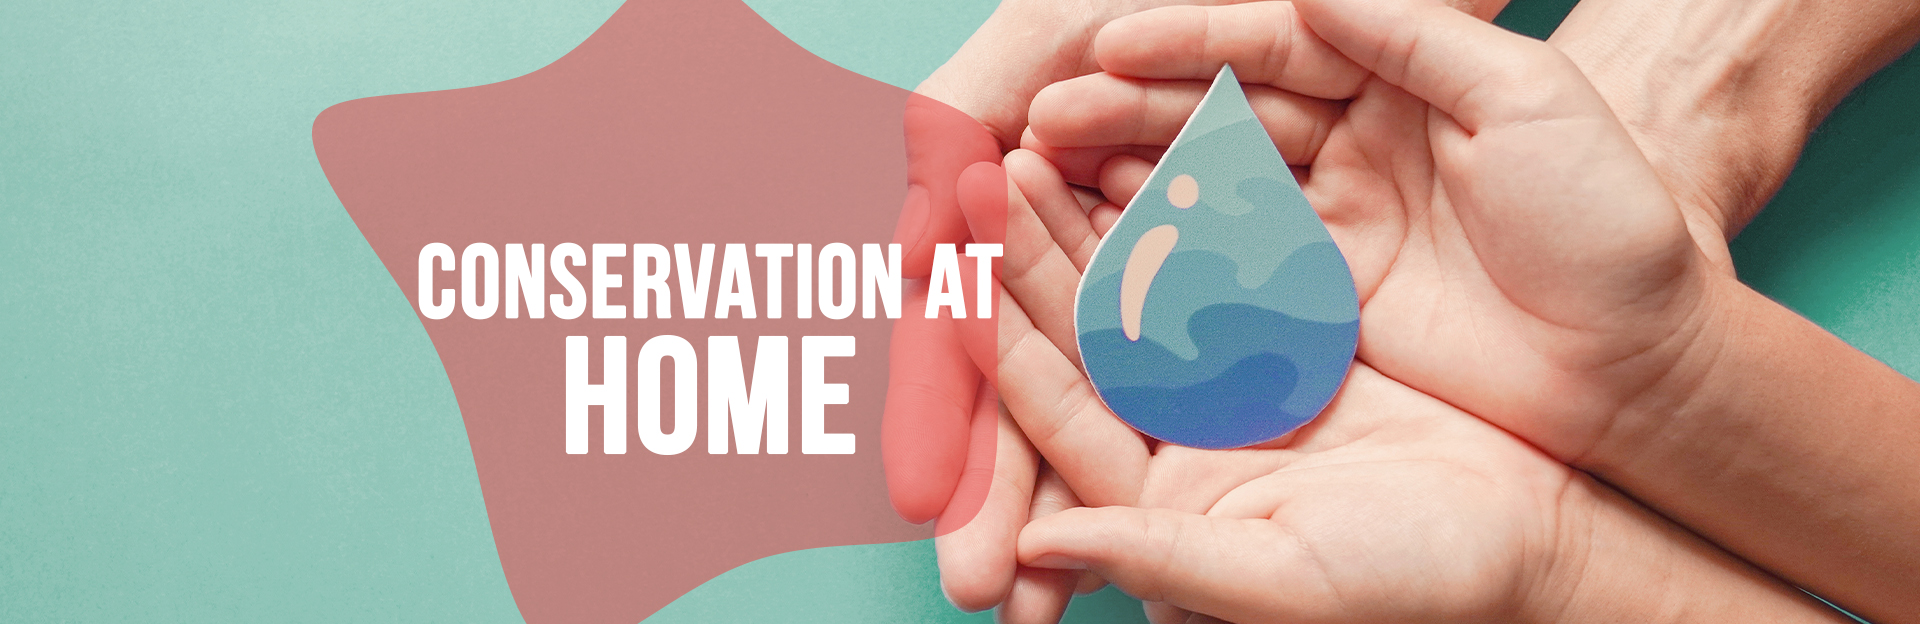 Header image for conservation at home page